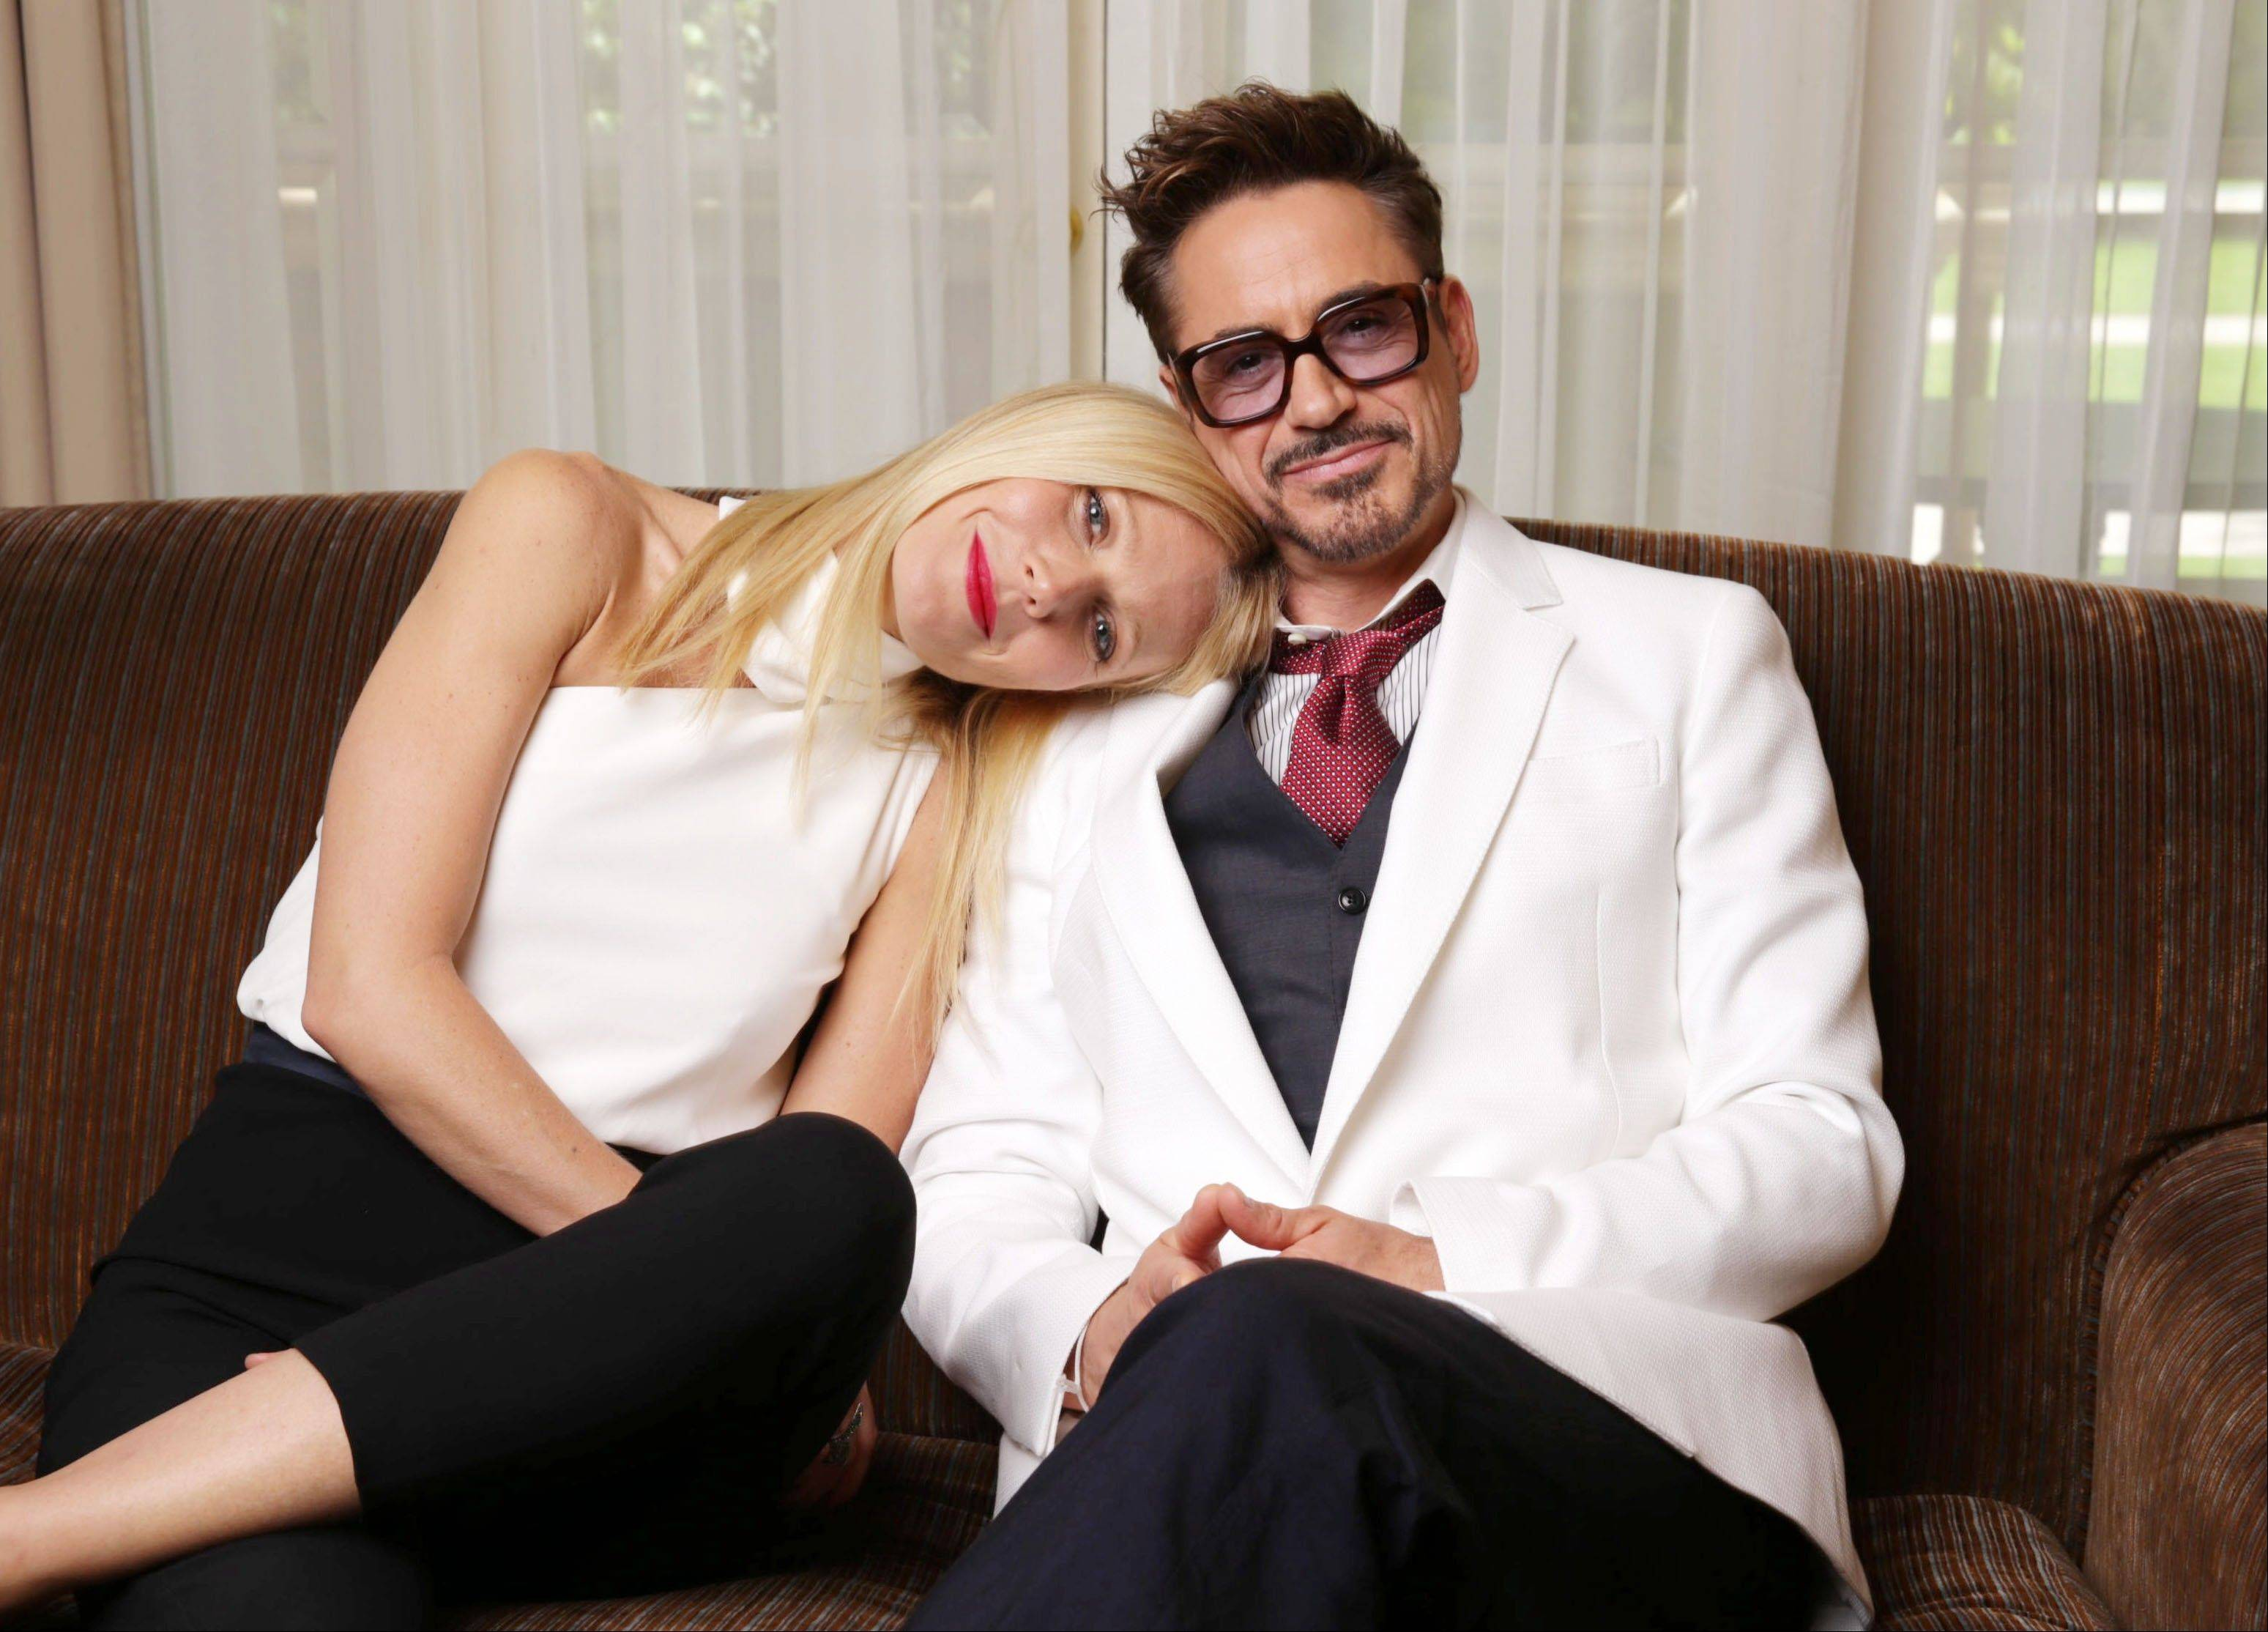 There�s something of the old married couple about good friends Gwyneth Paltrow and Robert Downey Jr., who star in the upcoming movie �Iron Man 3.�